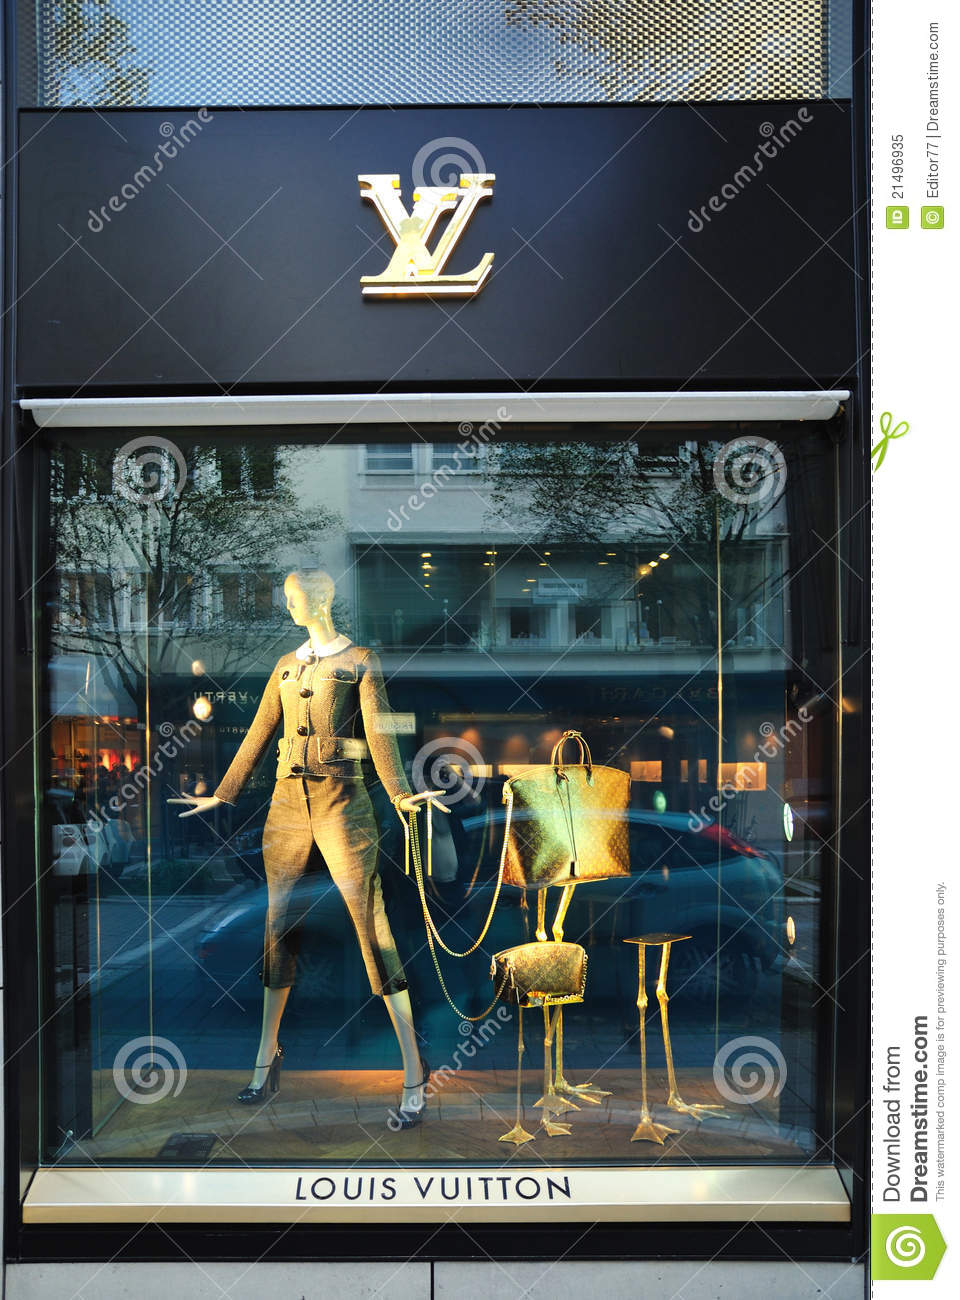 1f6228b8dee06 Louis Vuitton clothes and accessories store from Frankfurt city in Germany.